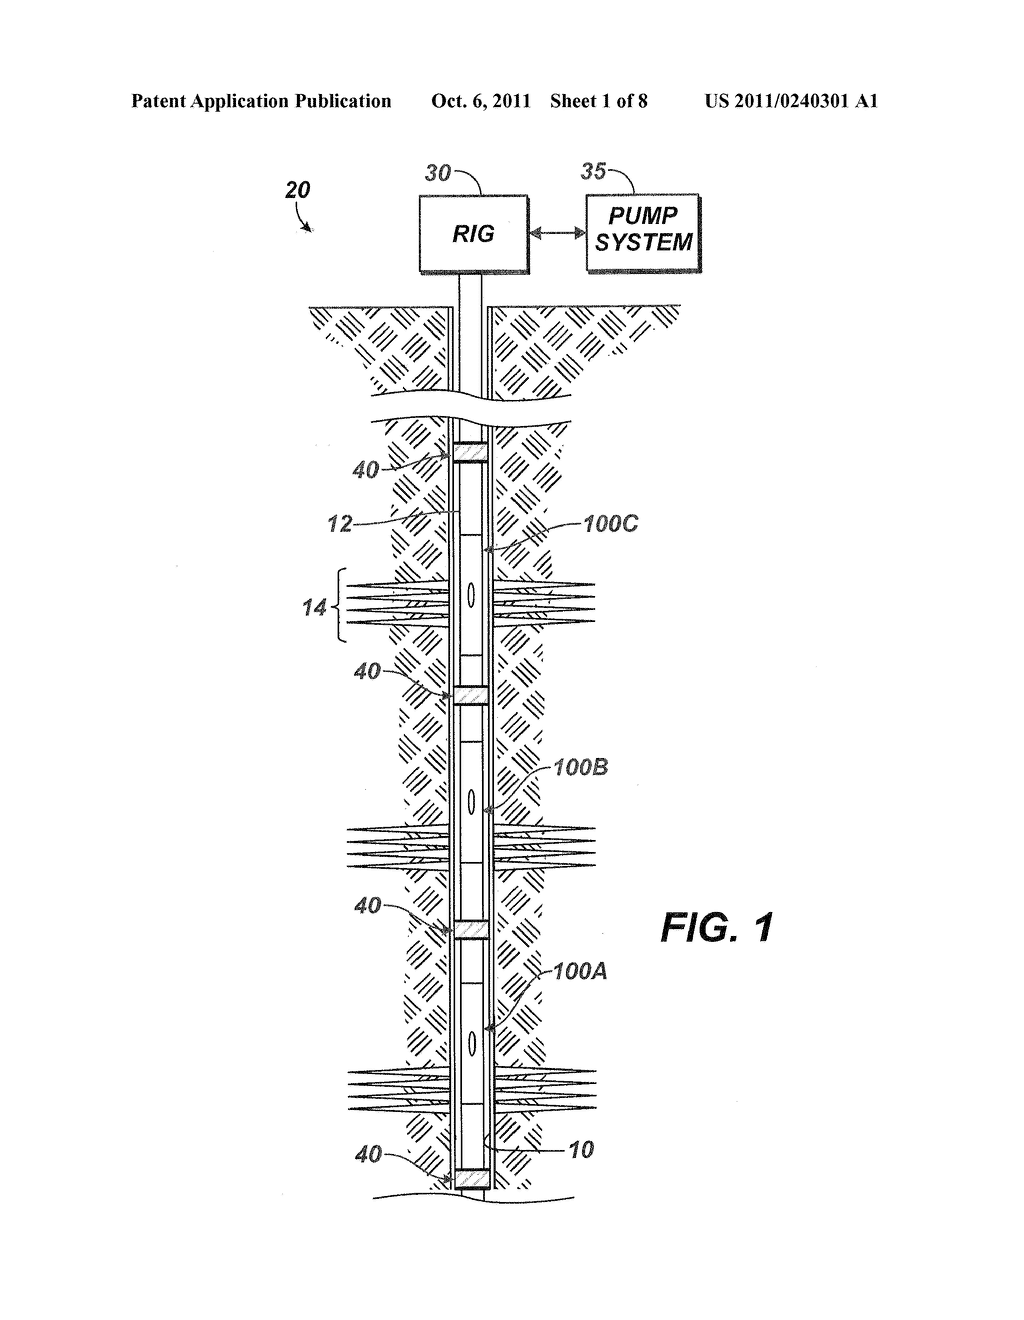 Indexing Sleeve for Single-Trip, Multi-Stage Fracing - diagram, schematic, and image 02